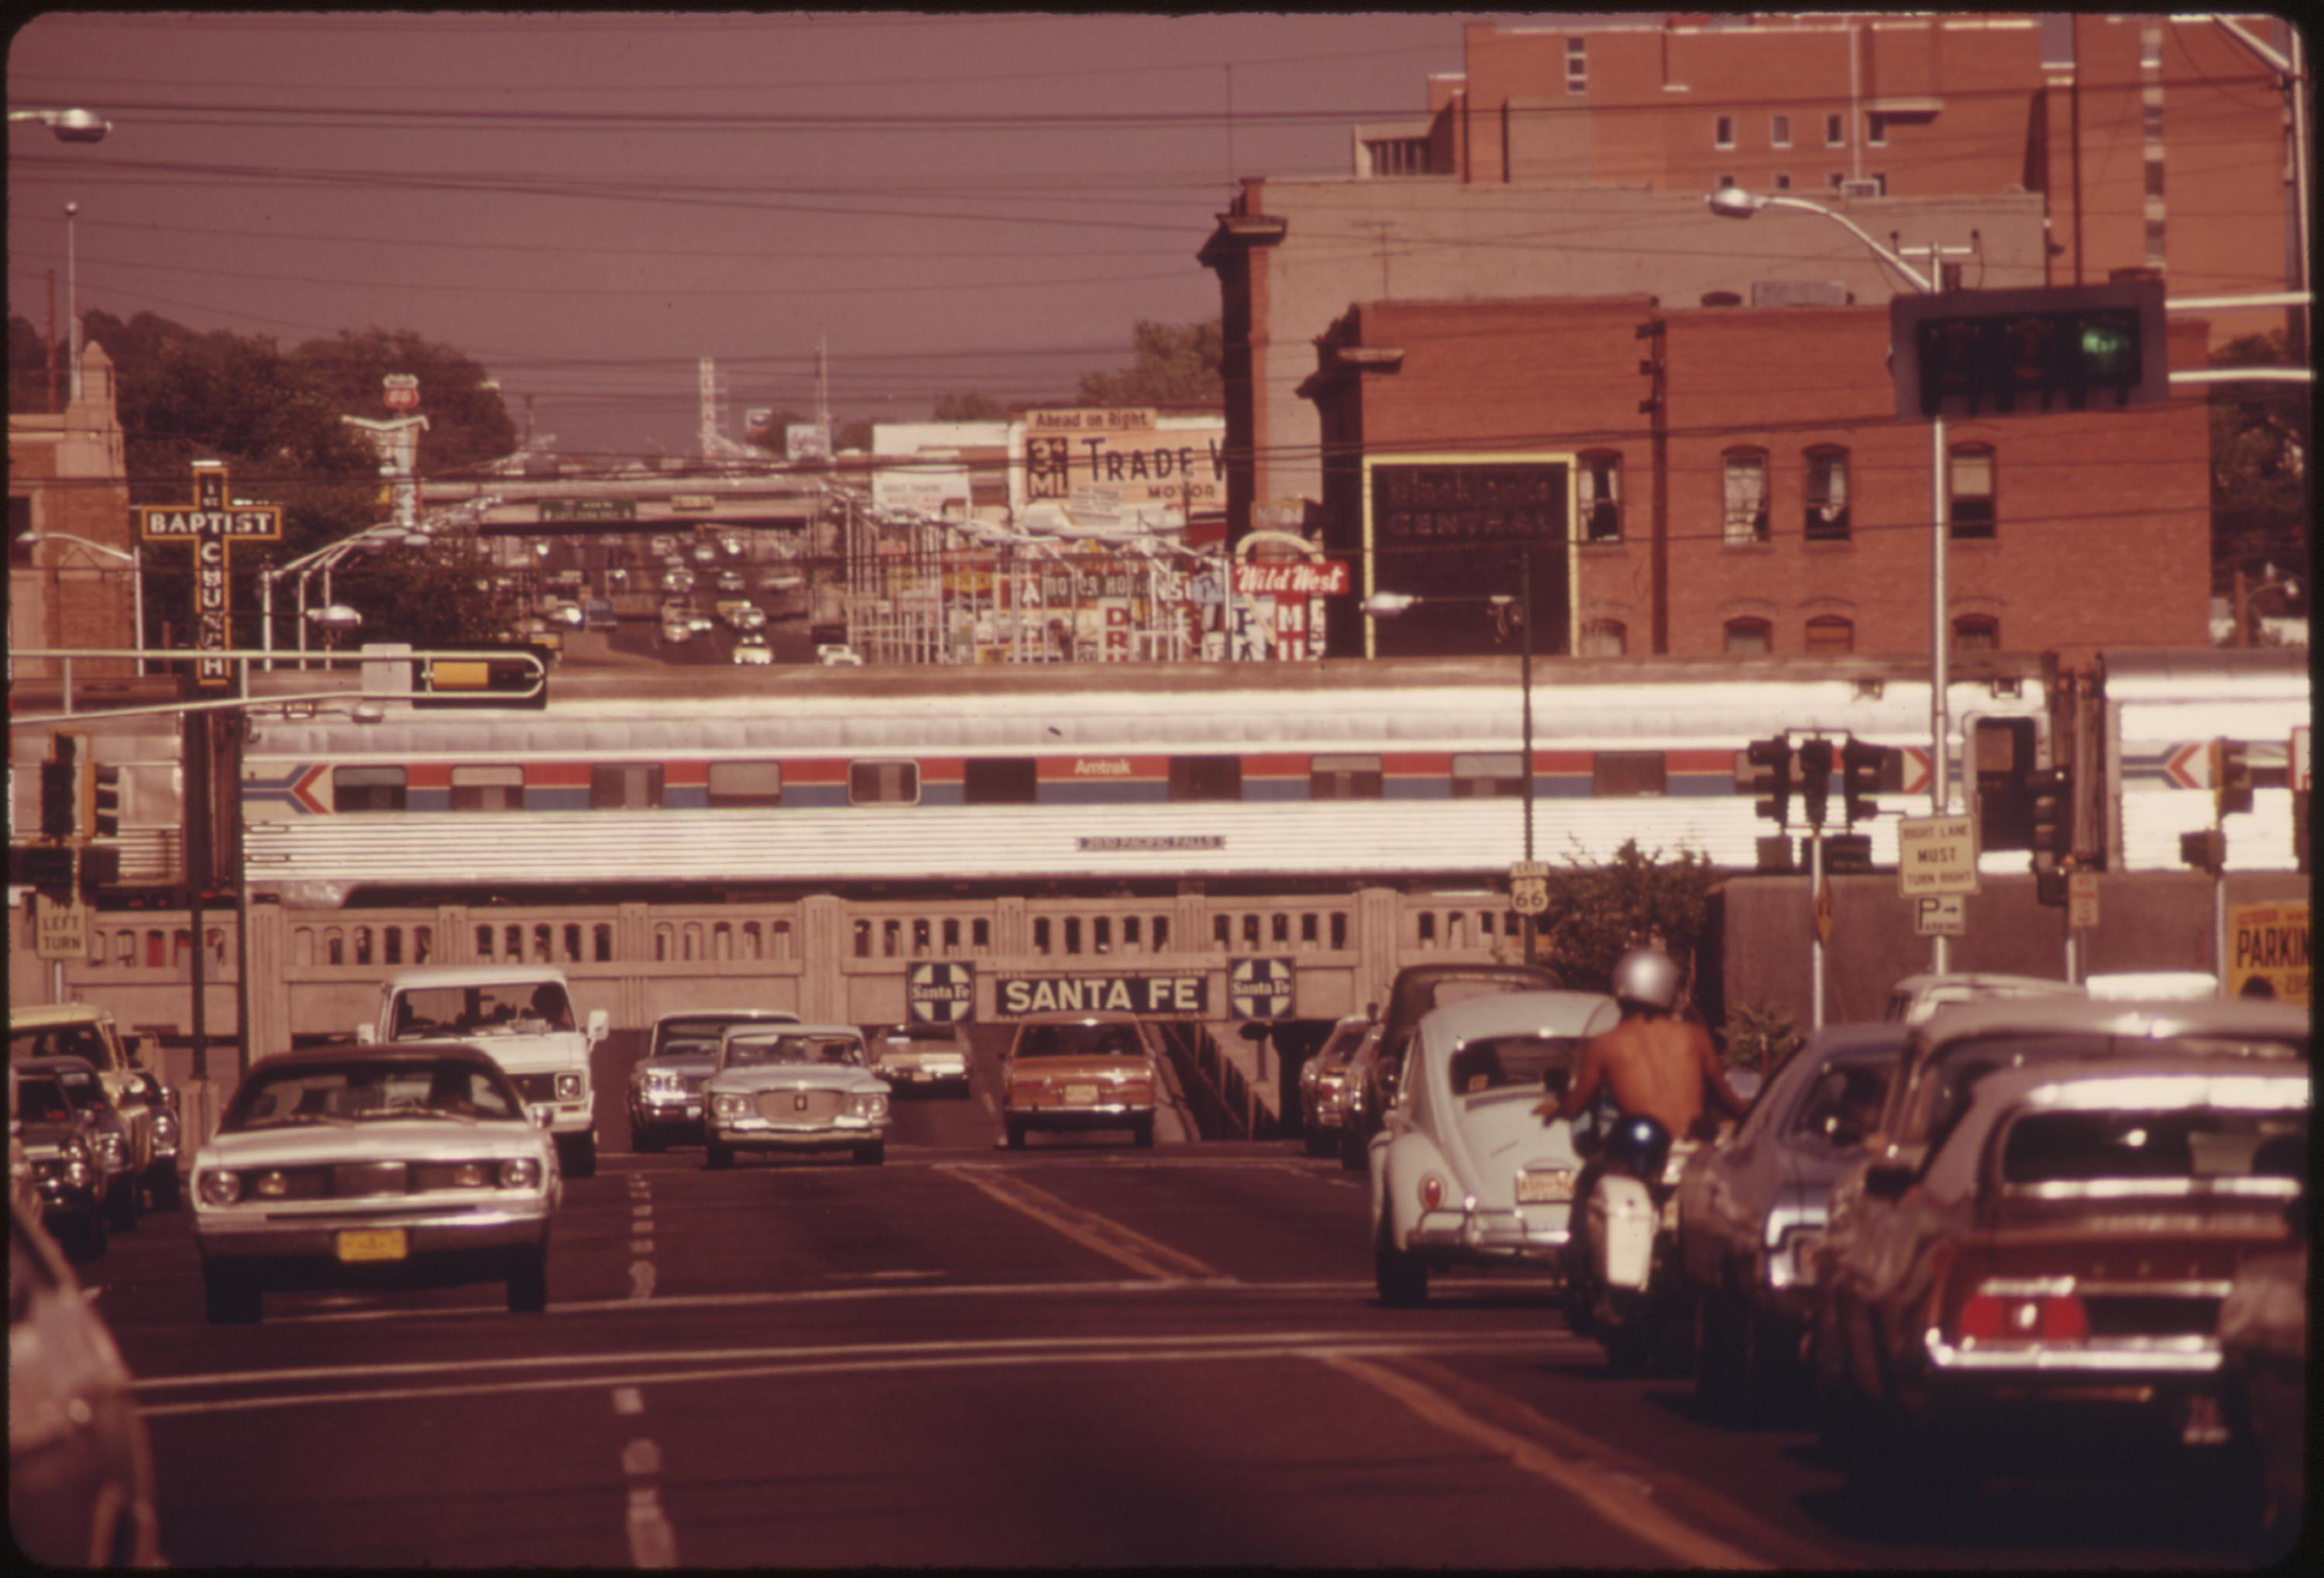 Amtrak's Southwest Limited crossing central avenue in downtown Albuquerque, New Mexico, on its trip from Los Angeles California, to Chicago, June 1974